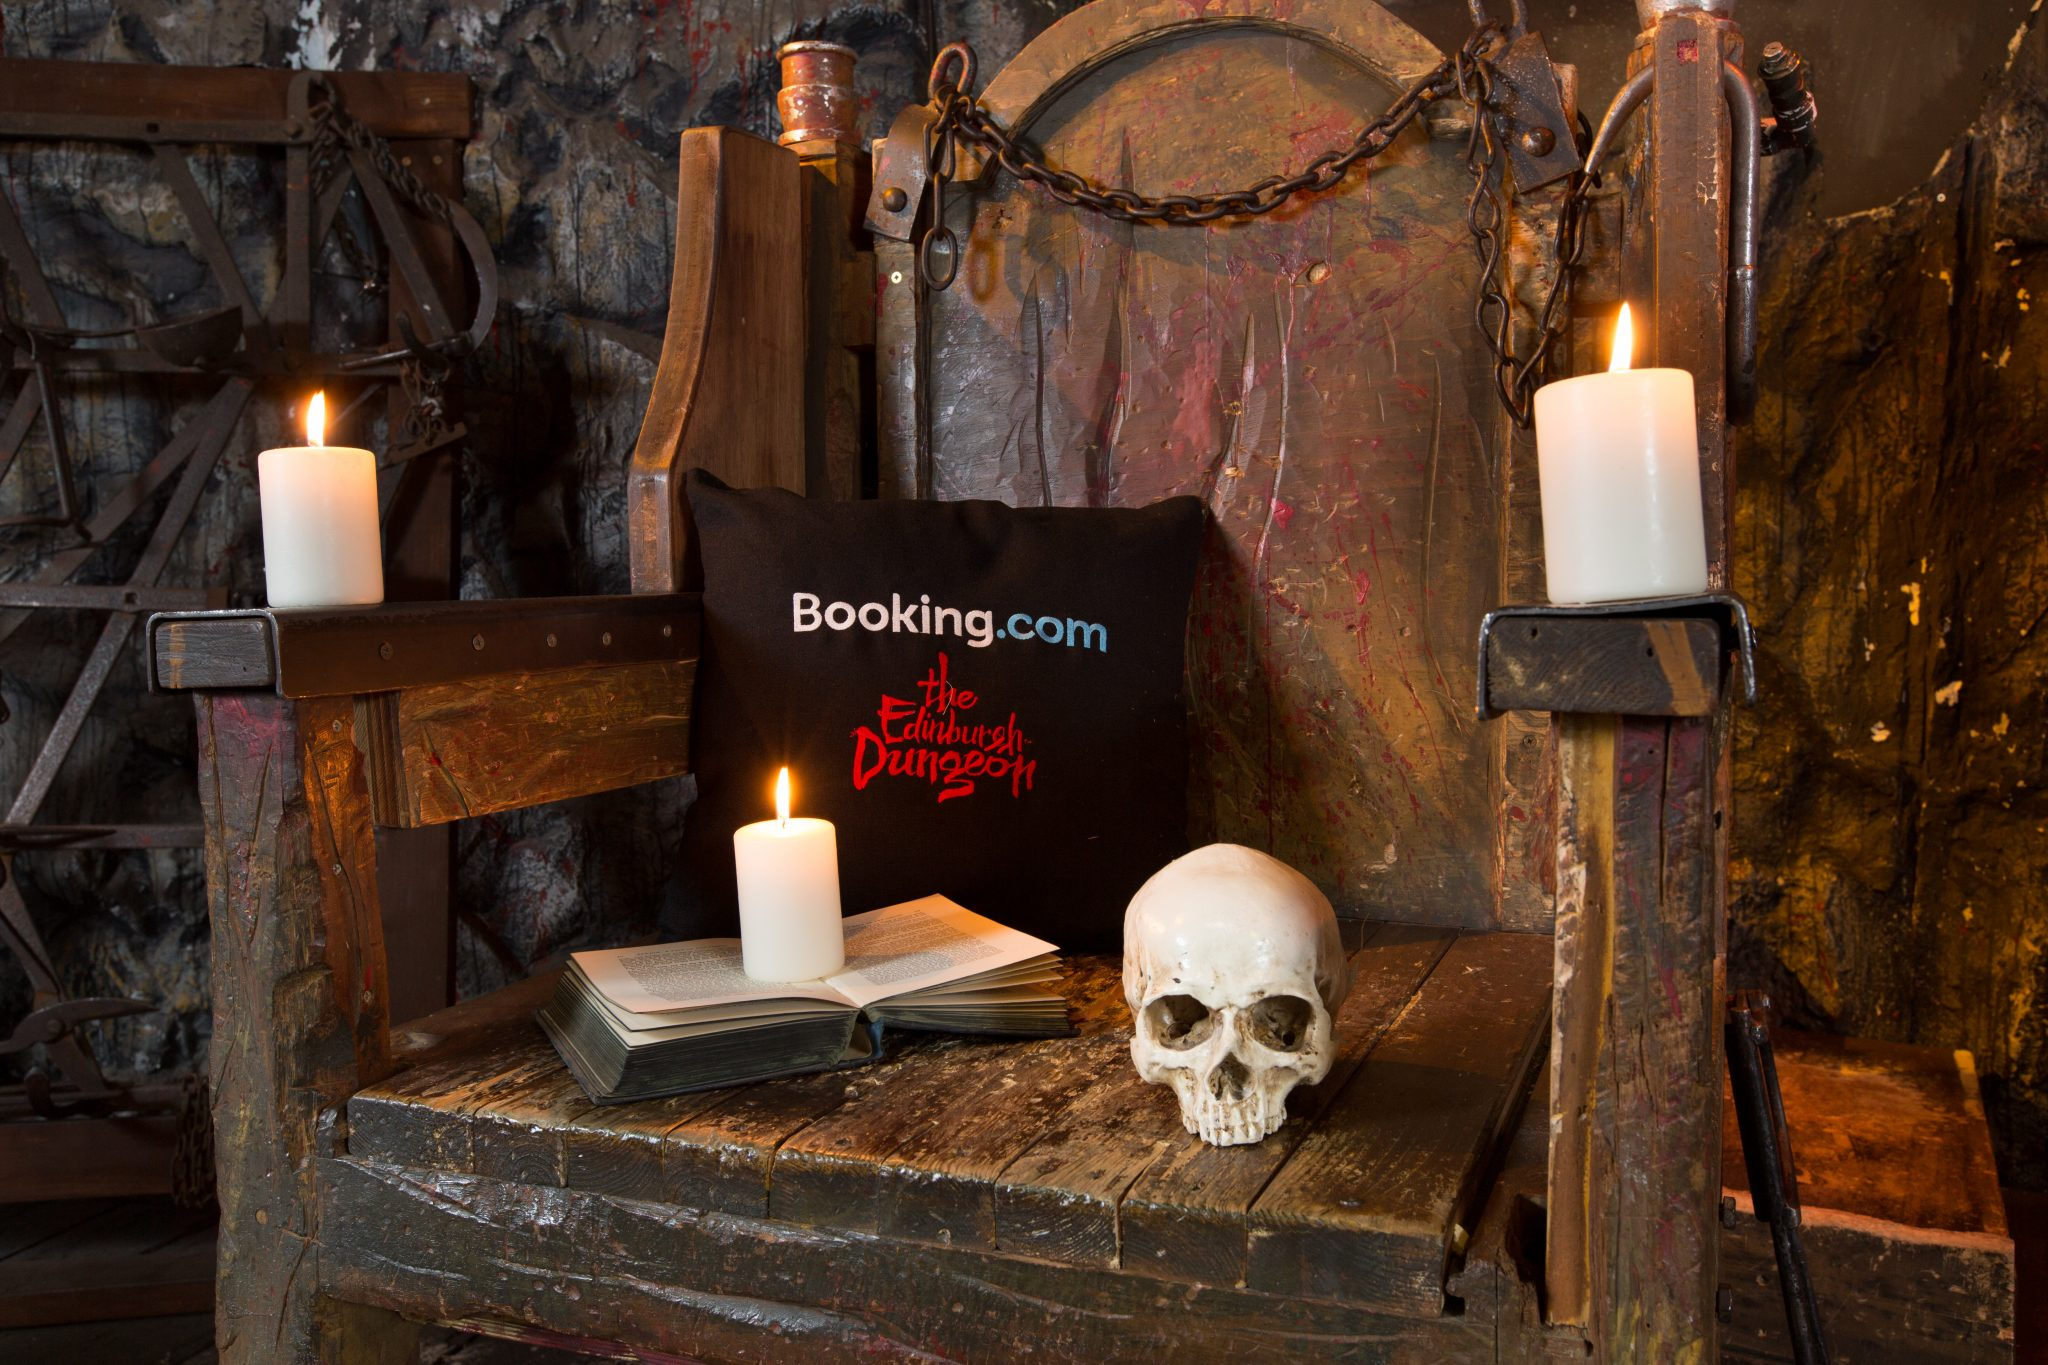 """Booking.com are collaborating with the Edinburgh Dungeon to offer a """"Sceance Sleepover – conjure the dead before going to bed"""" for Halloween, whereby guests will be able to book an exclusive coffin overnight stay at the Dungeons on Booking.com.  The stay will commence with the last Dungeon tour of the day and includes a Sceance session complete with the Dungeon's resident Medium and Ouija board, to conjure spooky goings on with the ghostly White Lady. After the festivities have finished, guests will climb into their Coffin bed for the night. Picture date: Wednesday June 19, 2019.. Photo credit : Robert Perry/PA Wire"""